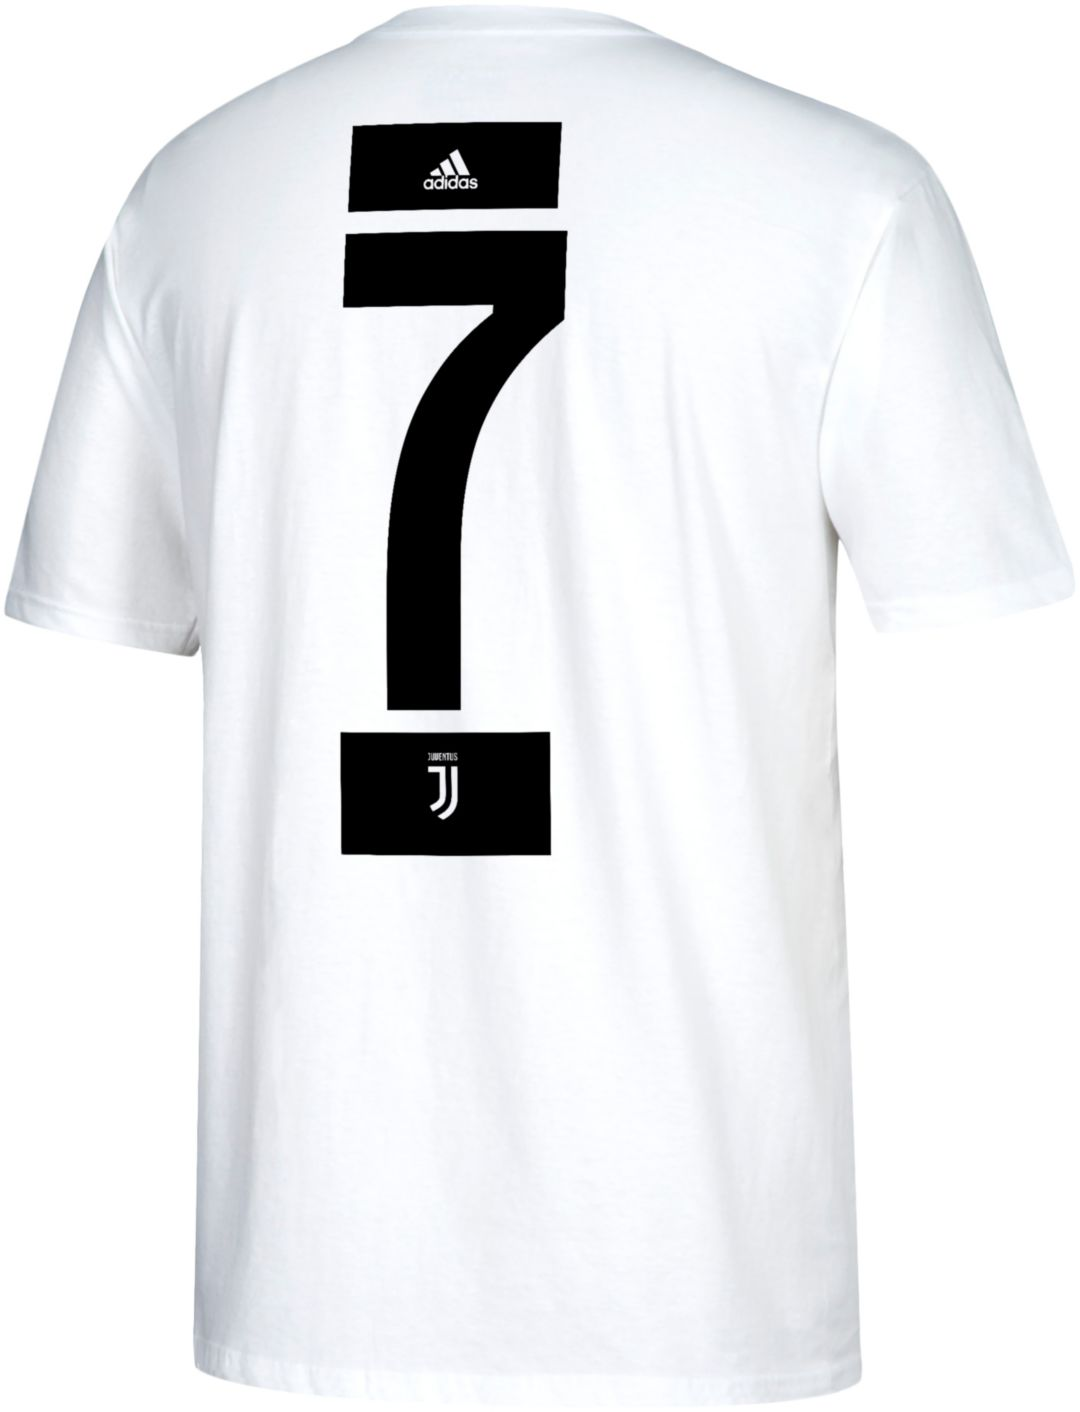 size 40 904bb 96c30 adidas Men's Juventus Cristiano Ronaldo #7 White Player T-Shirt